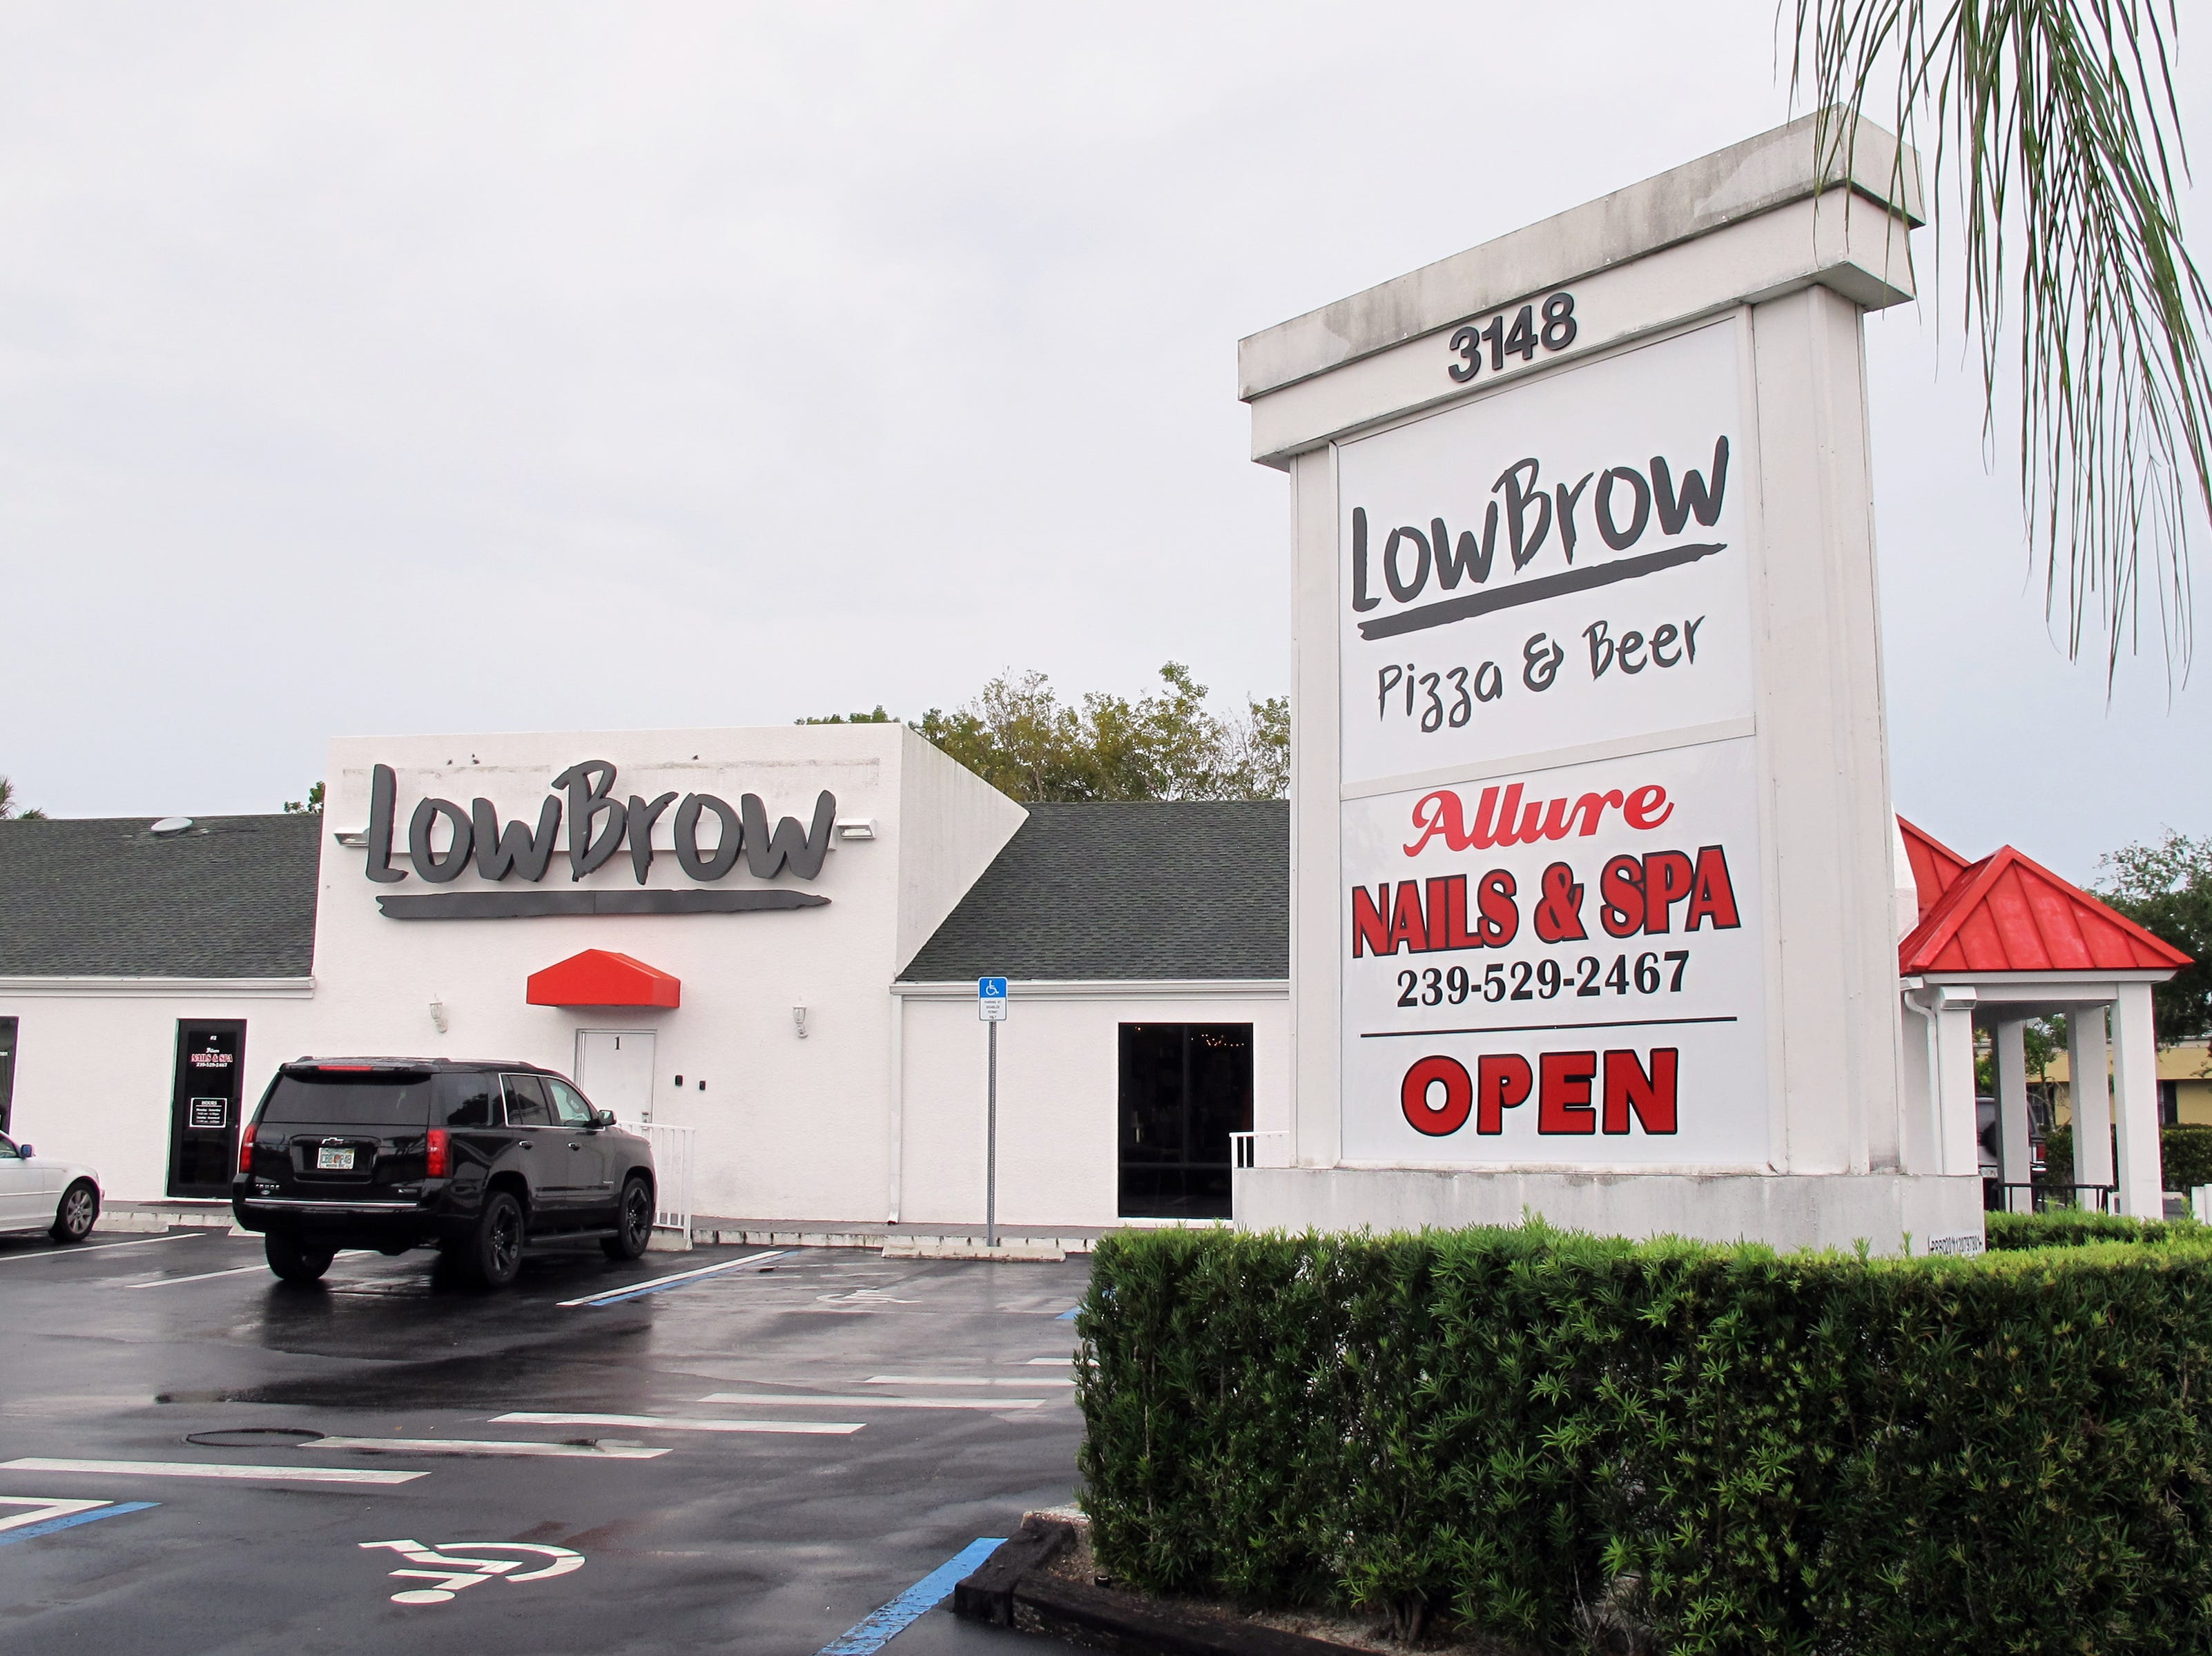 LowBrow launched April 20, 2018, in the former Five Guys space on U.S. 41 East between Bayshore Drive and the Collier County Government Center in East Naples.